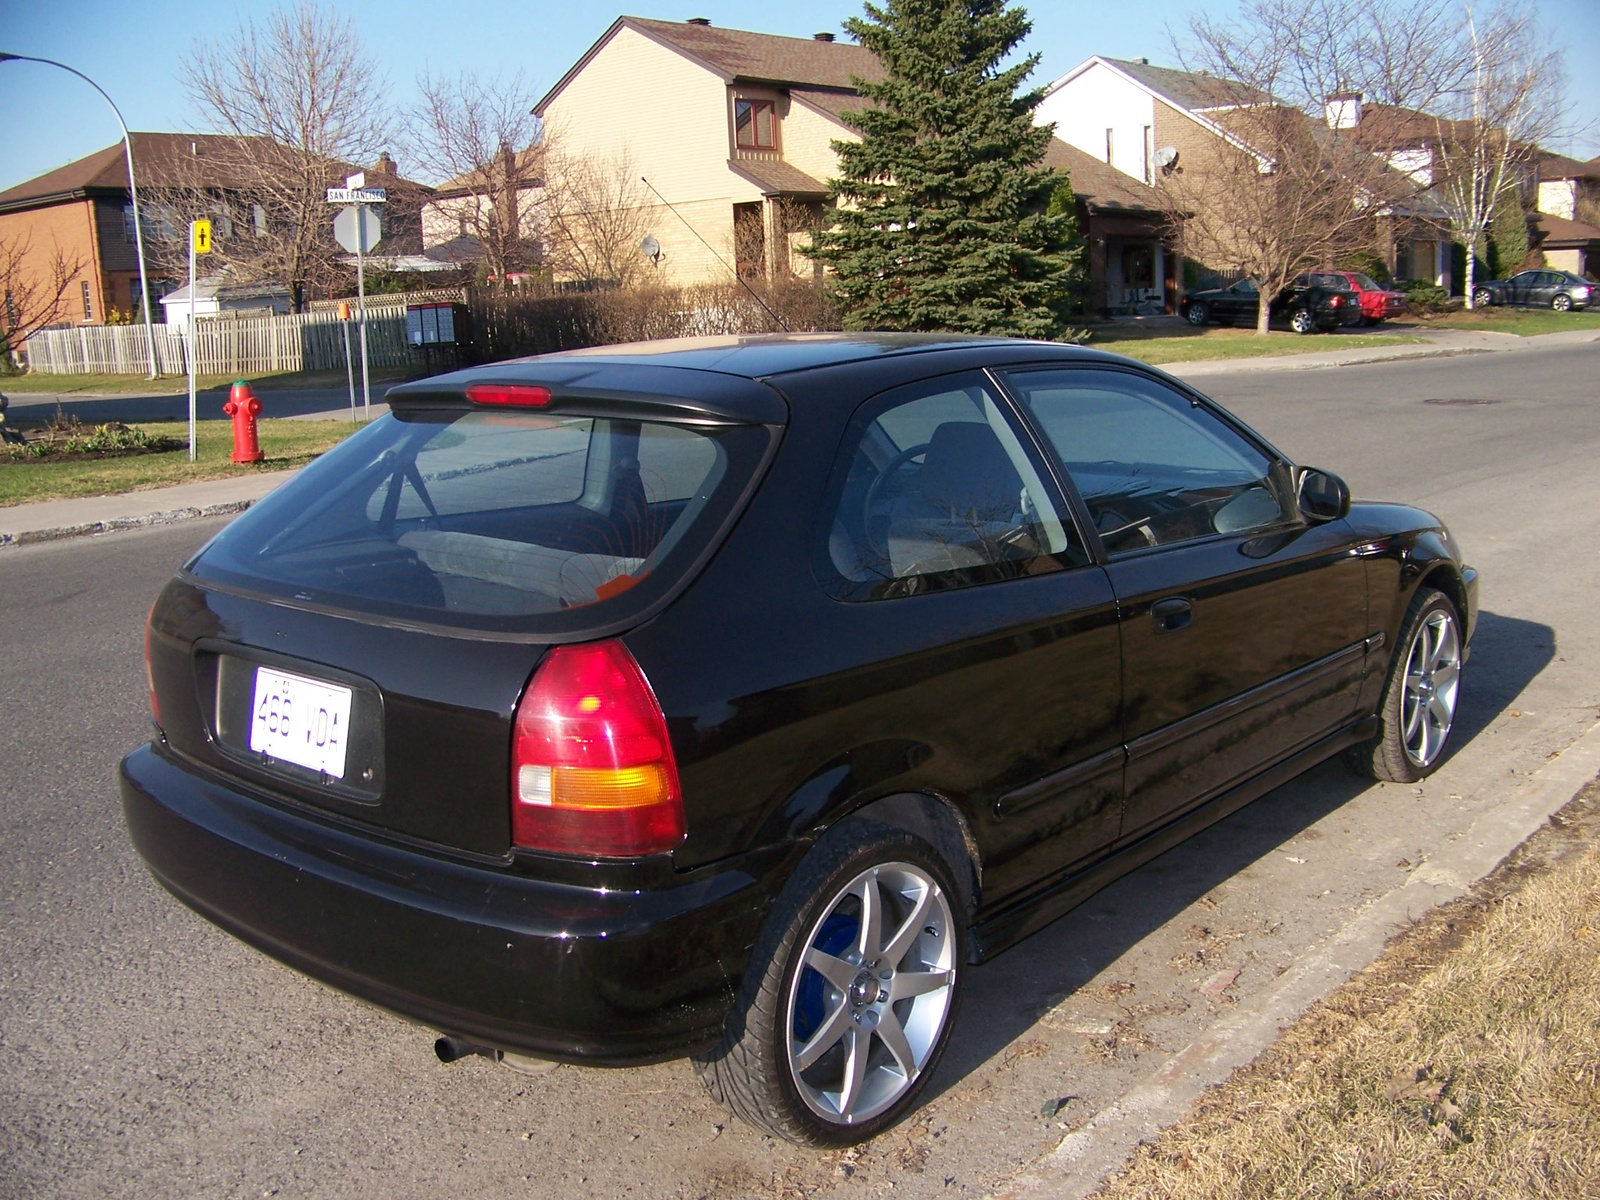 1996 honda civic hatchback pimp pictures to pin on for 1996 honda civic hatchback